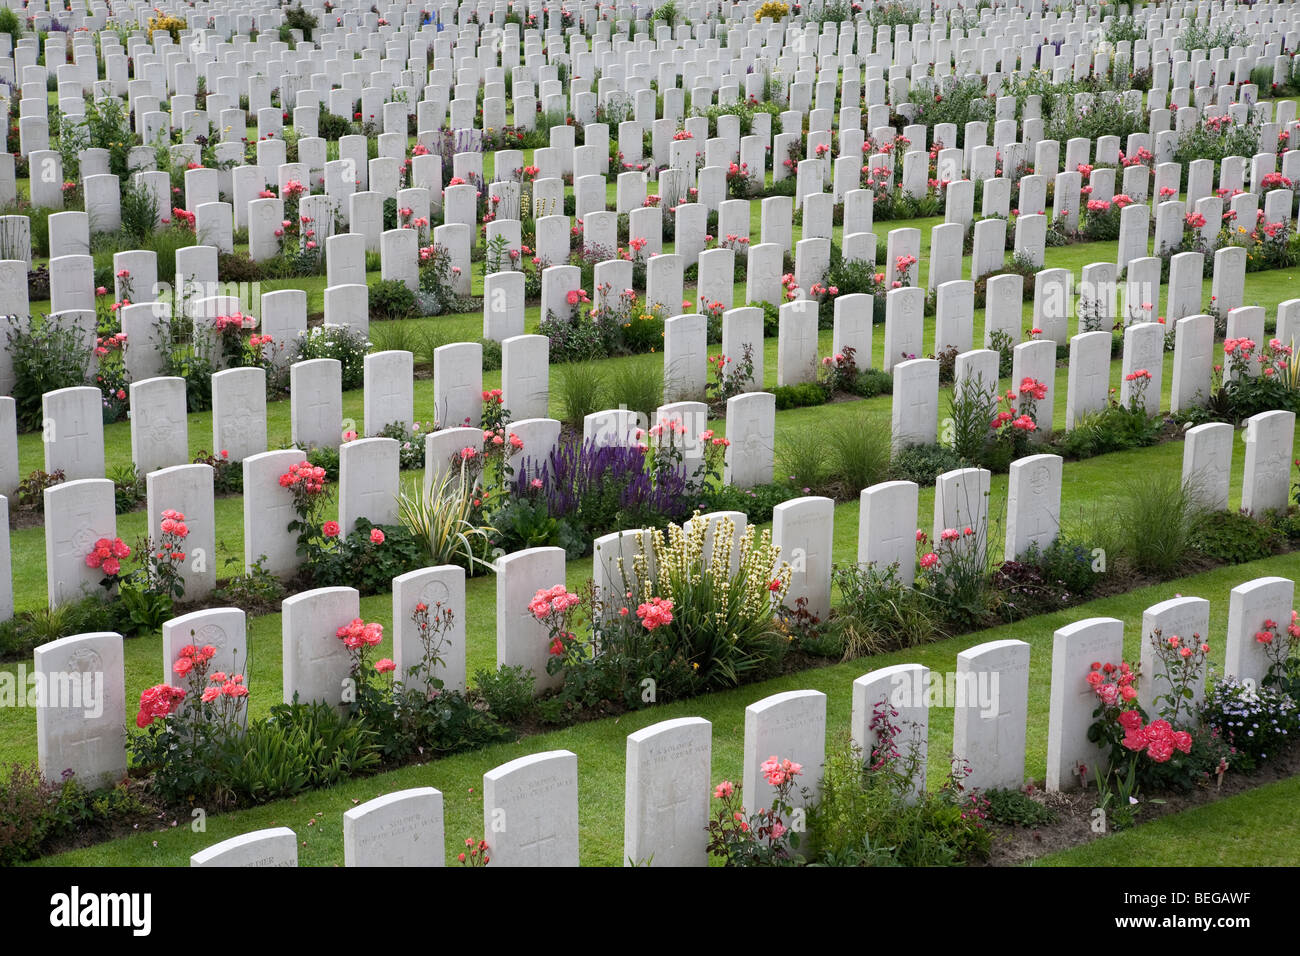 View over Tyne Cot Military Cemetery. First World War British cemetery with 11,856 white tombstones. - Stock Image